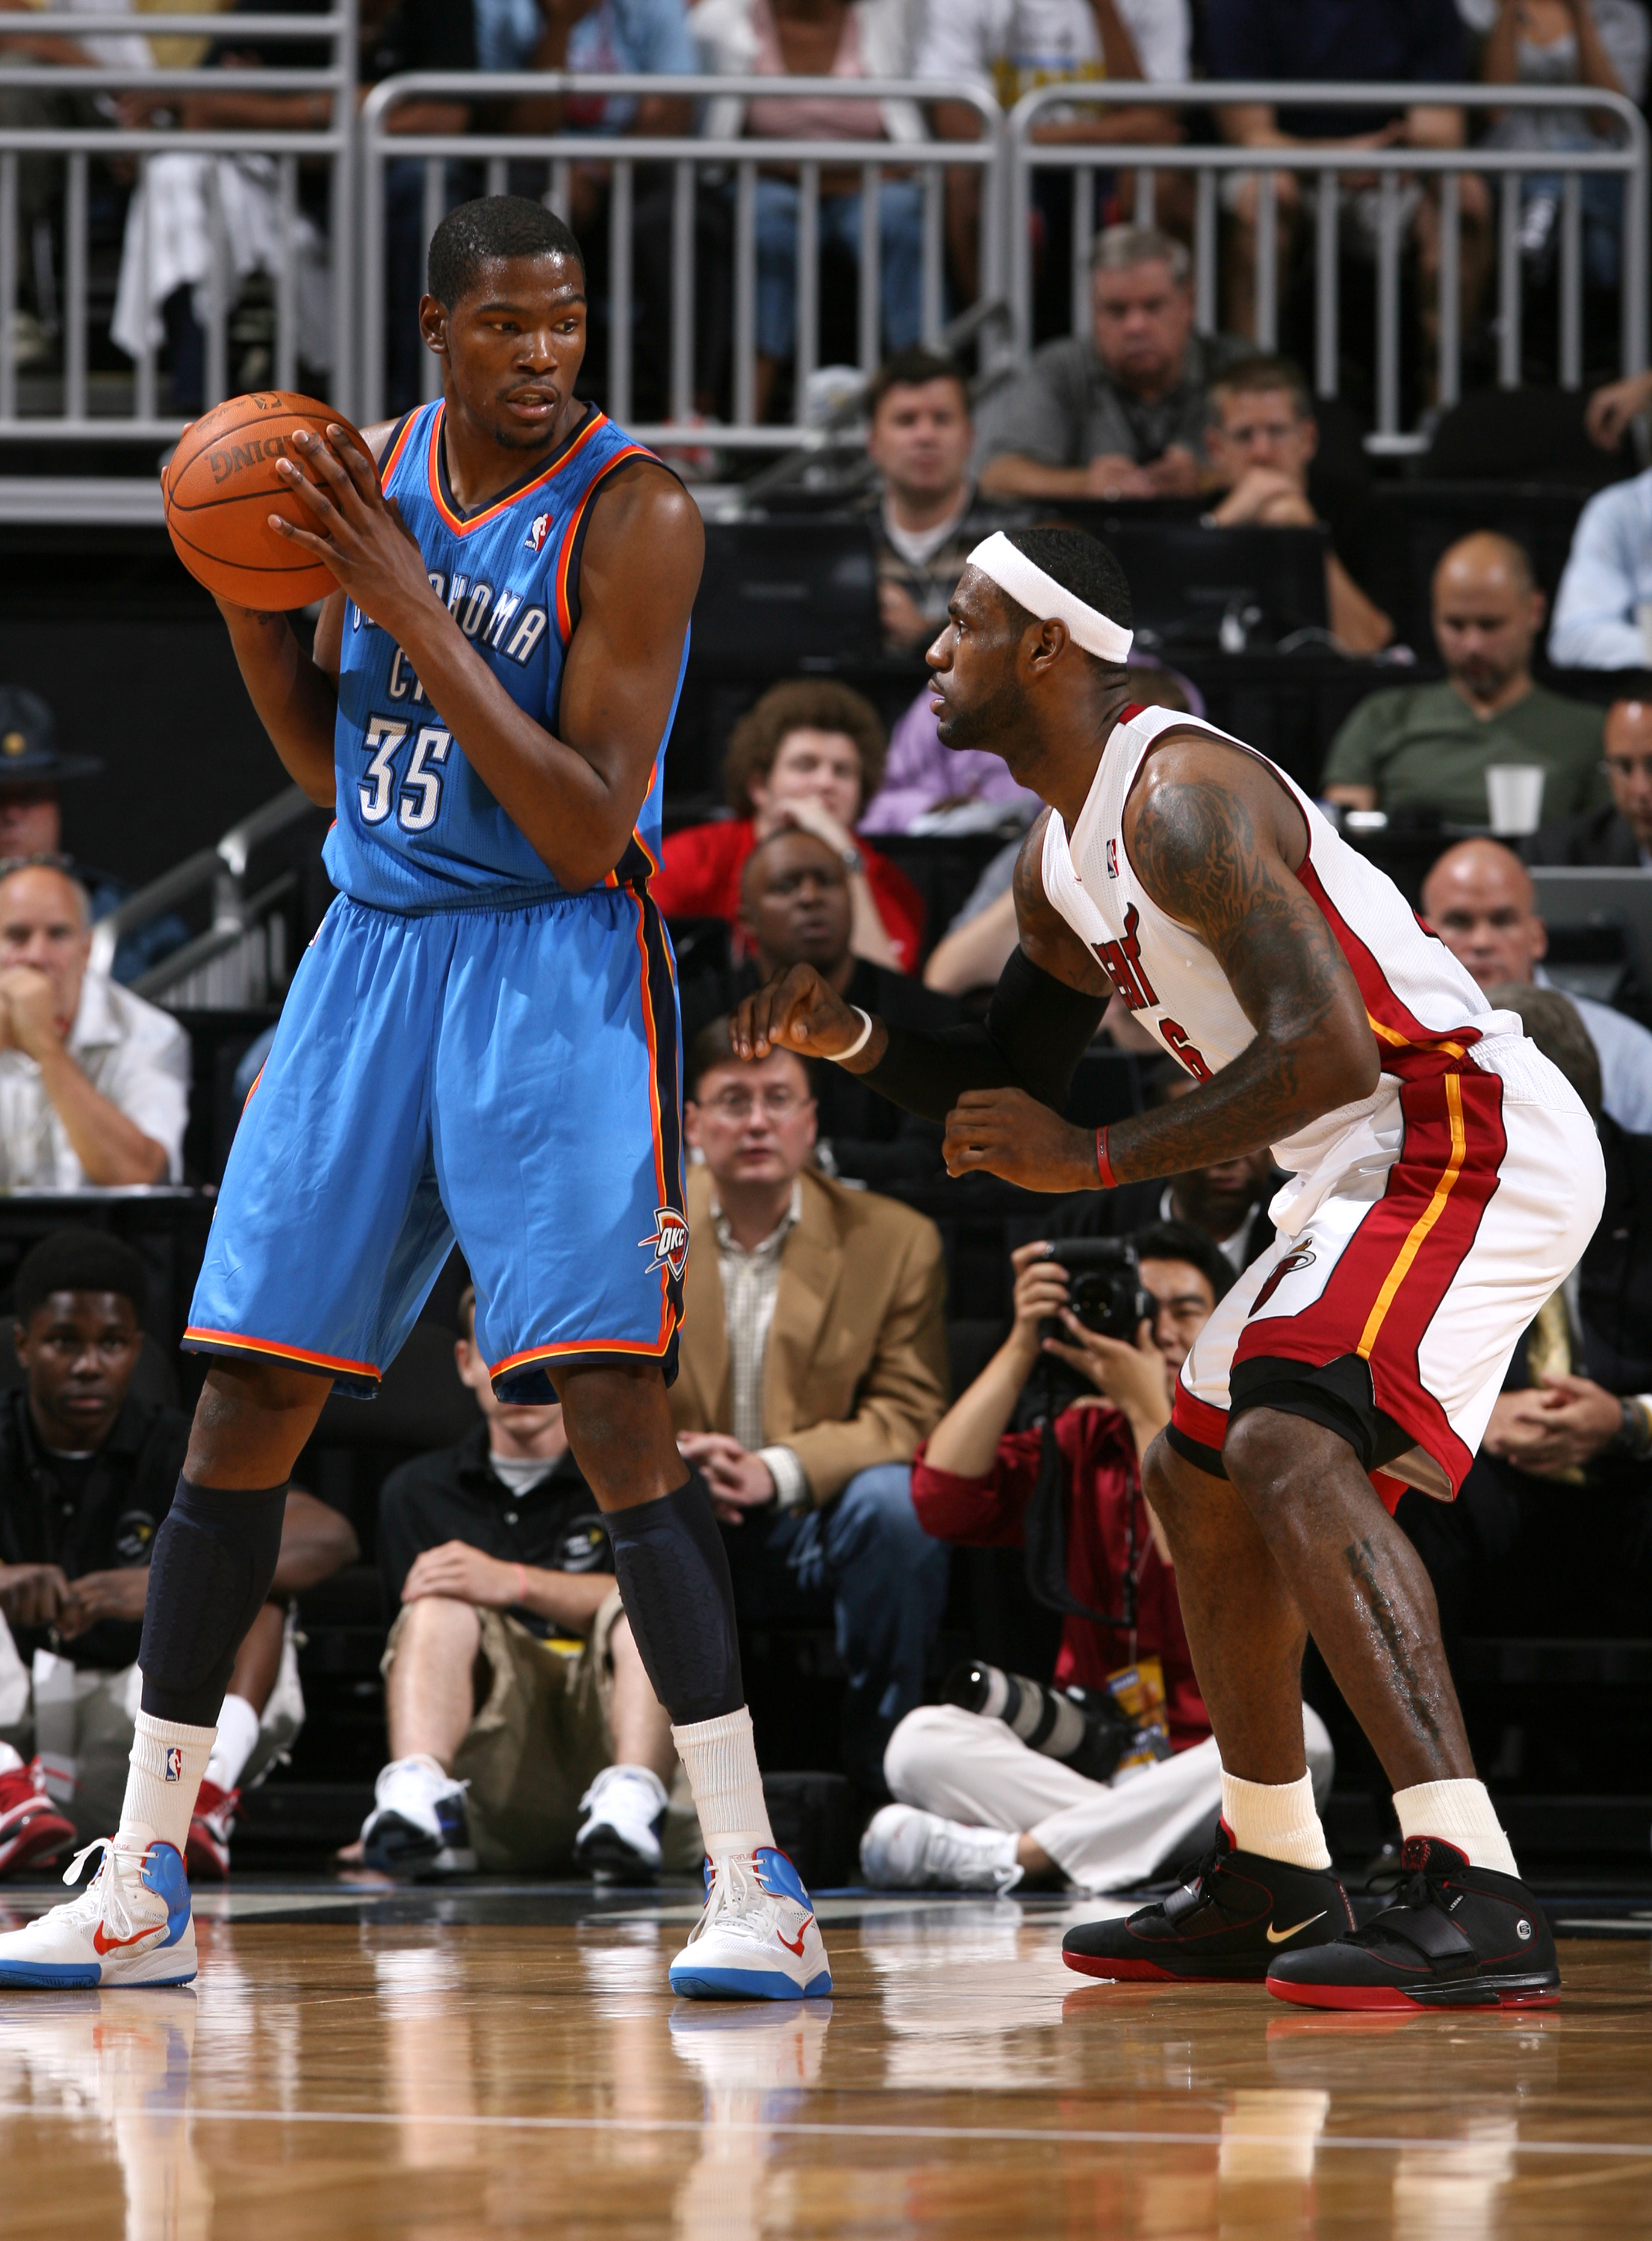 NBA Preview: Top 15 Storylines for the 2010-11 Season